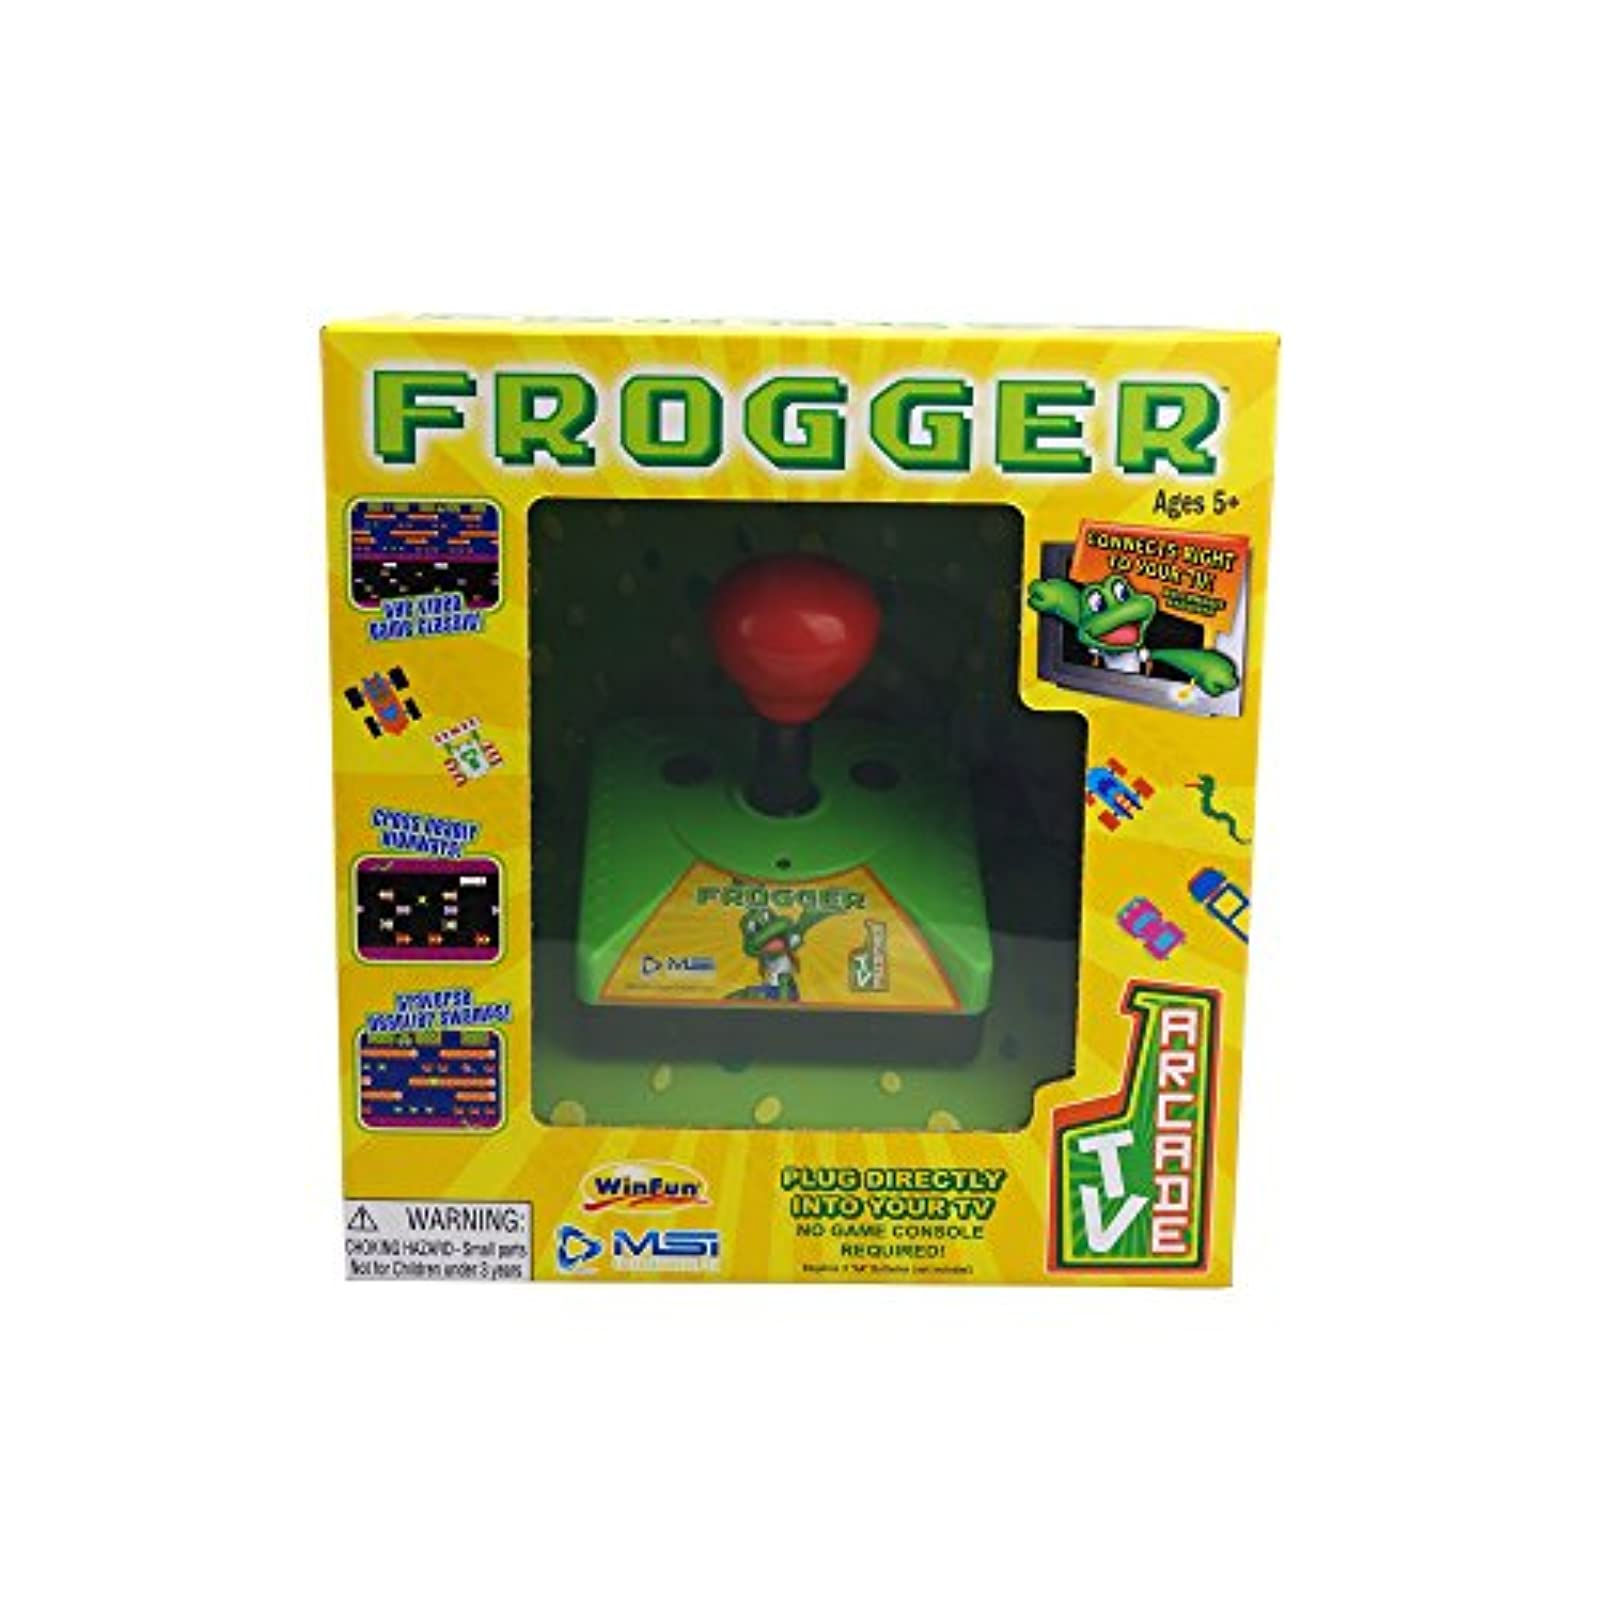 MSI Entertainment TV Arcade Frogger Gaming System Not Console